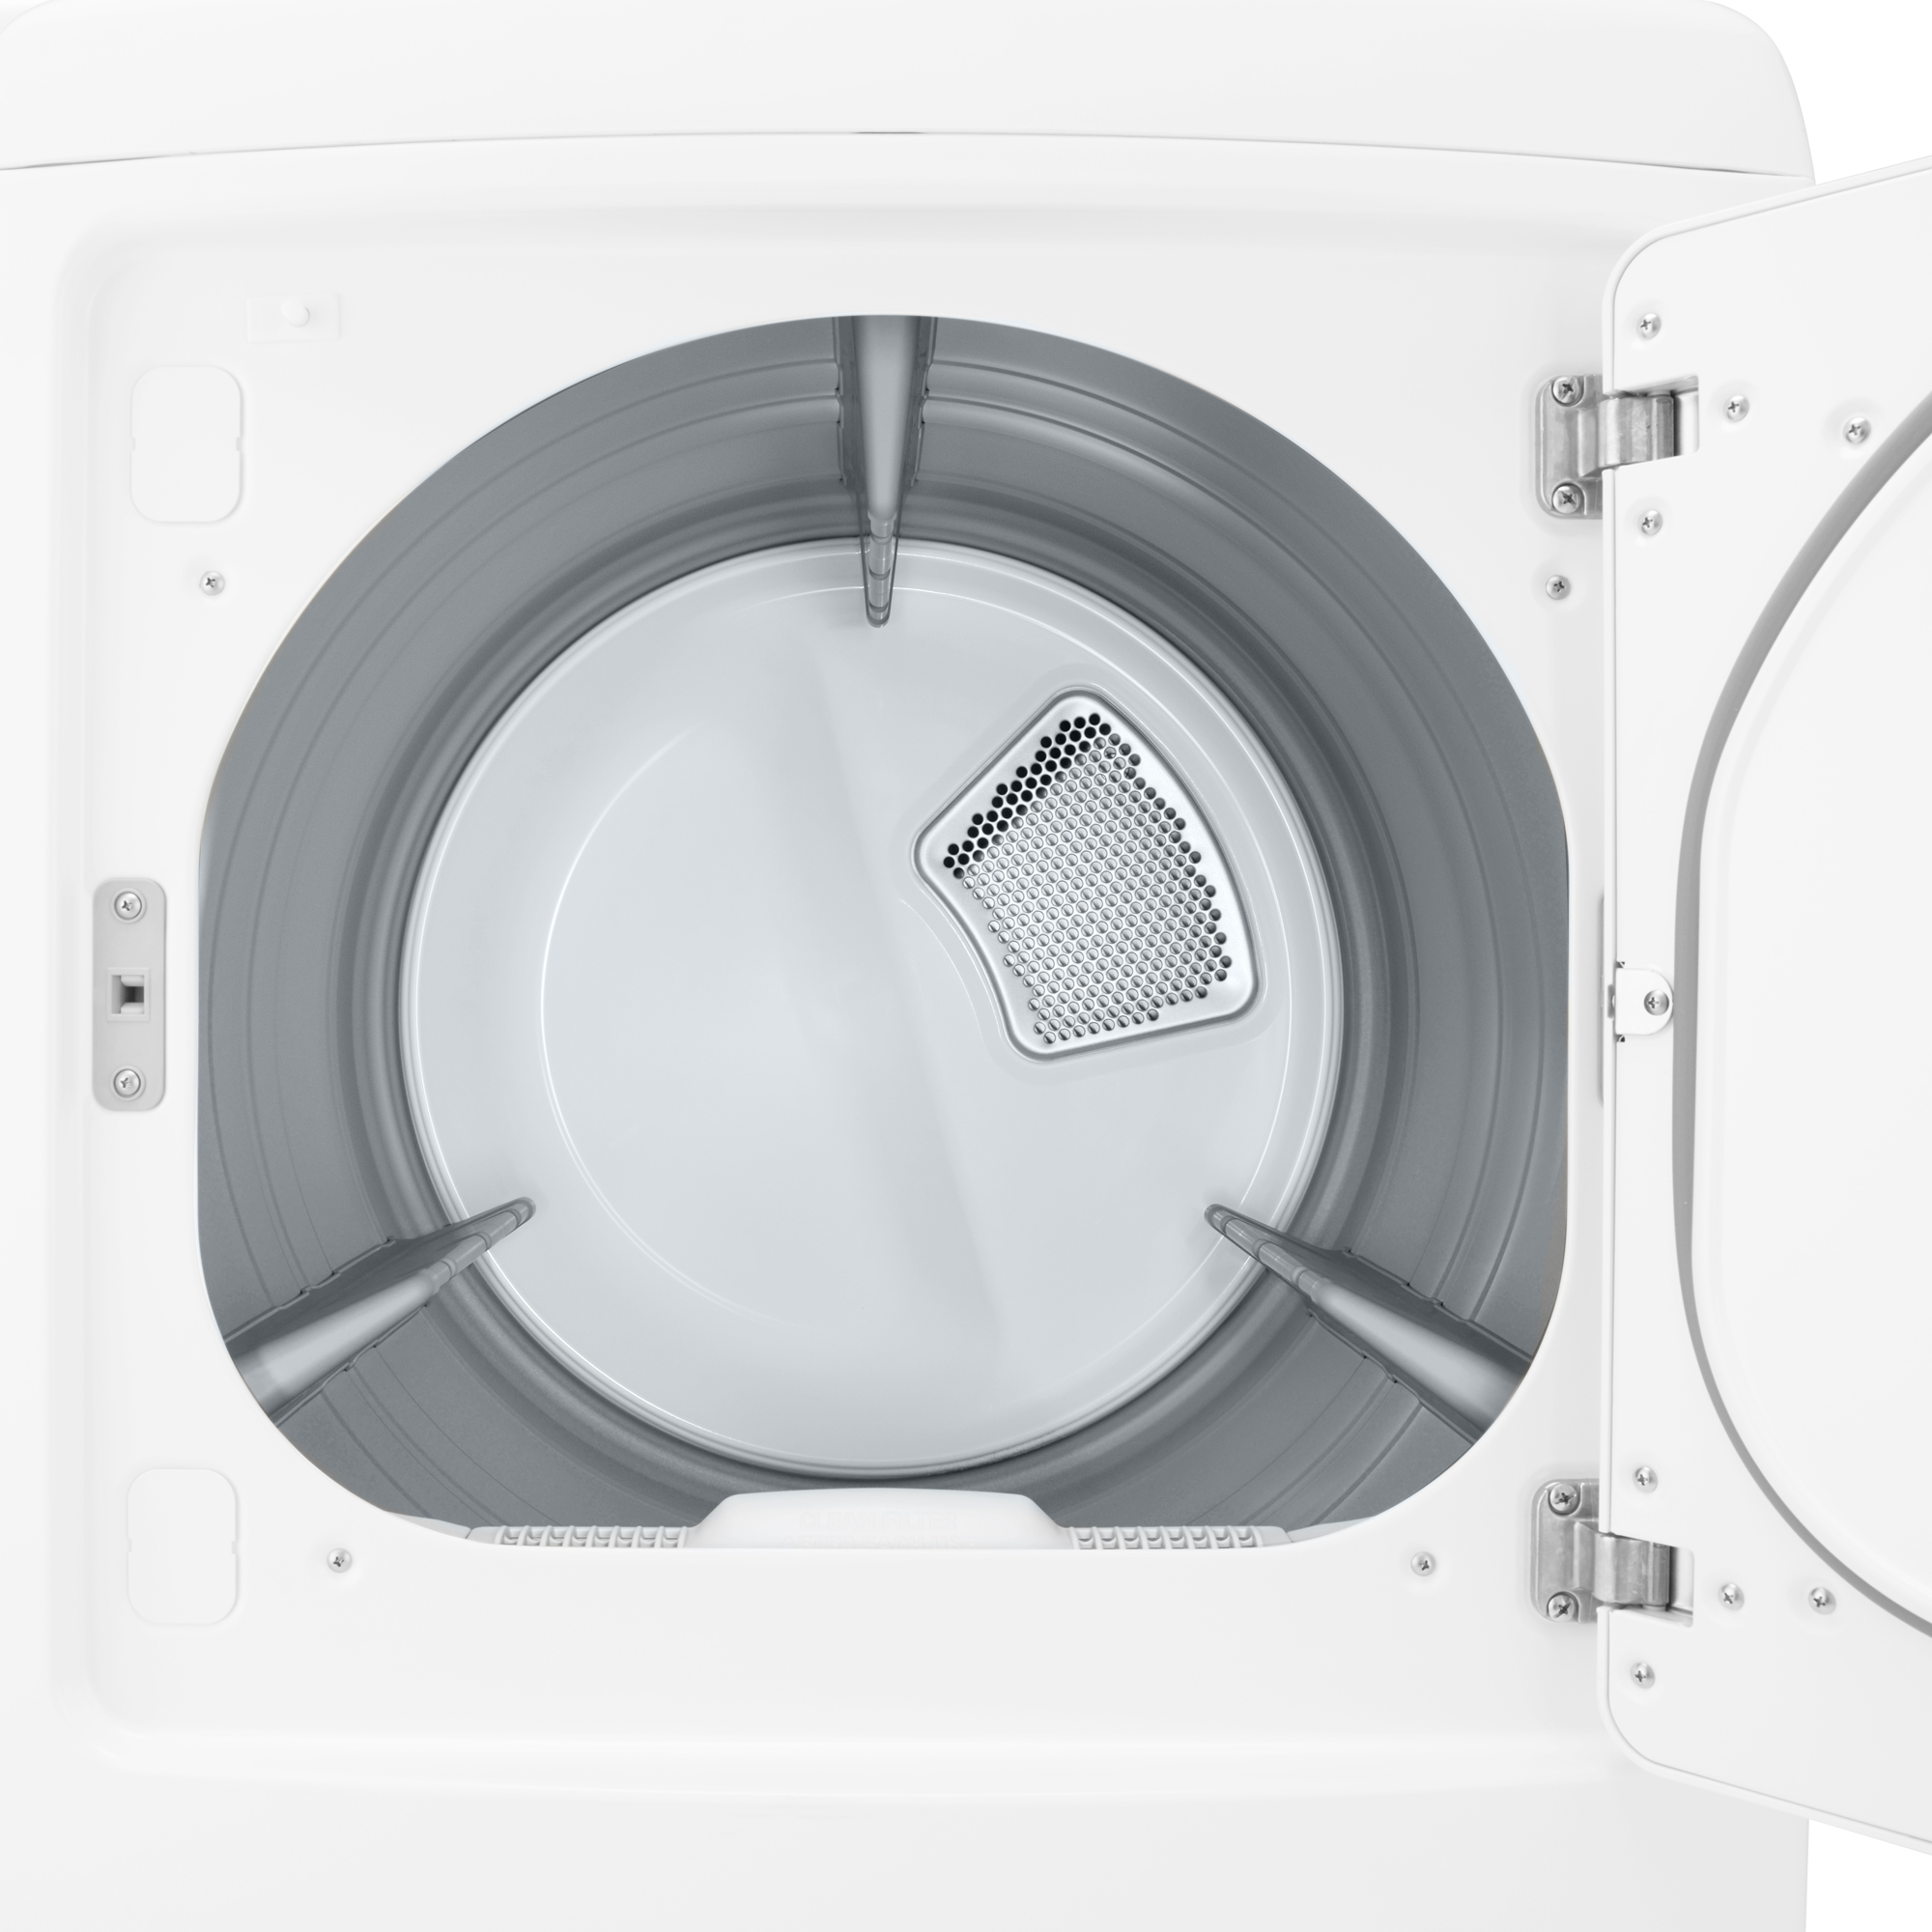 LG DLE1501W 7.3 cu. ft. Front Control Electric Dryer – White